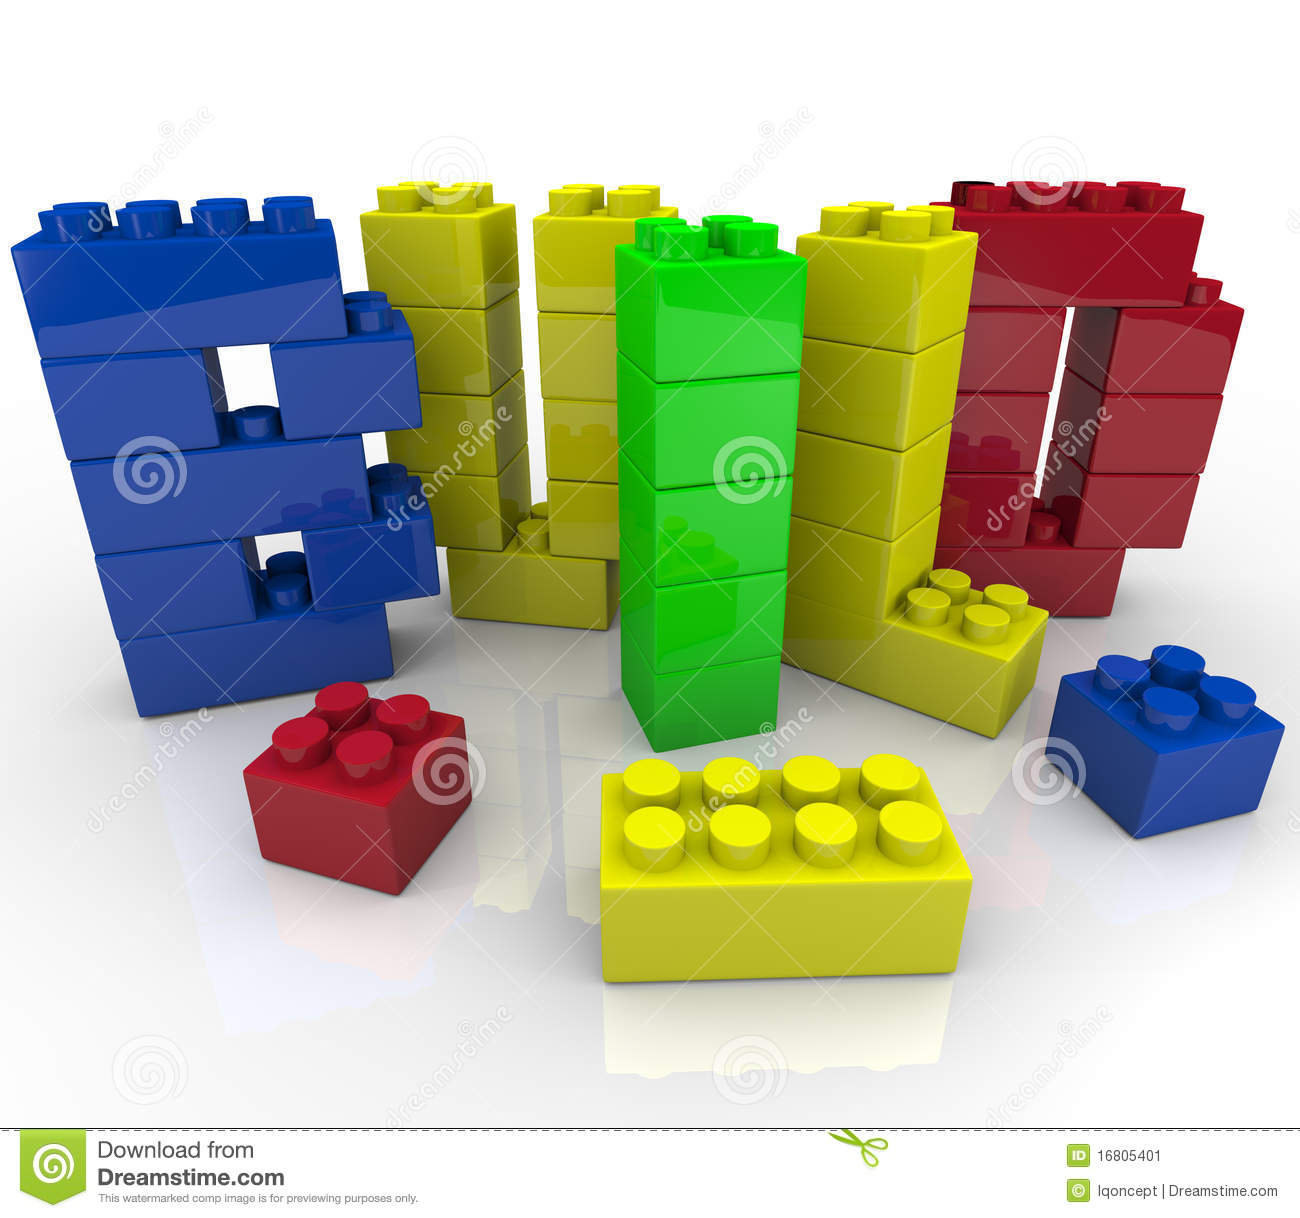 Https Www Dreamstime Com Stock Image Build Word Toy Building Blocks Image16805401